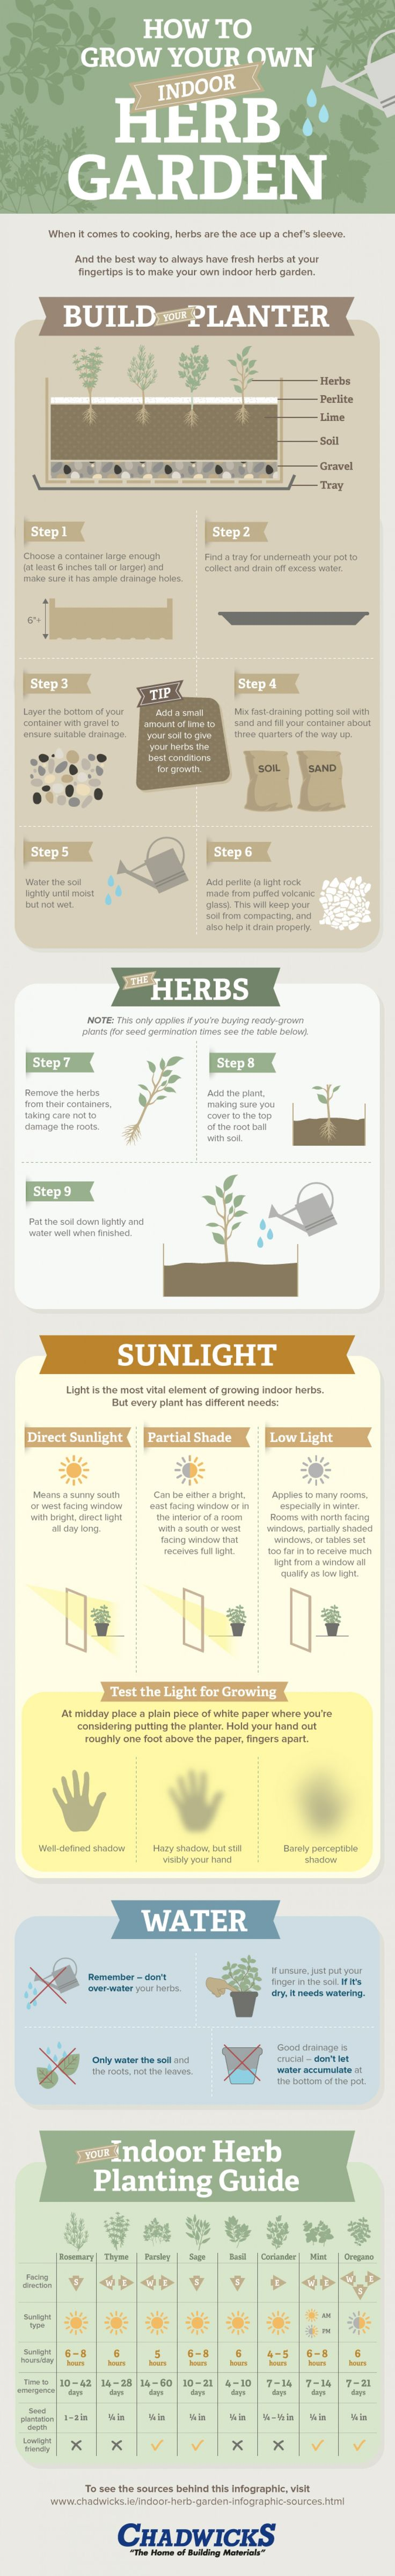 How To Grow Your Own Indoor #Herb #Garden [ #infographic ] | Stop wasting time buying herbs. Make your own herb garden. Read this infographic to get all the advices you need for growing your herbs.